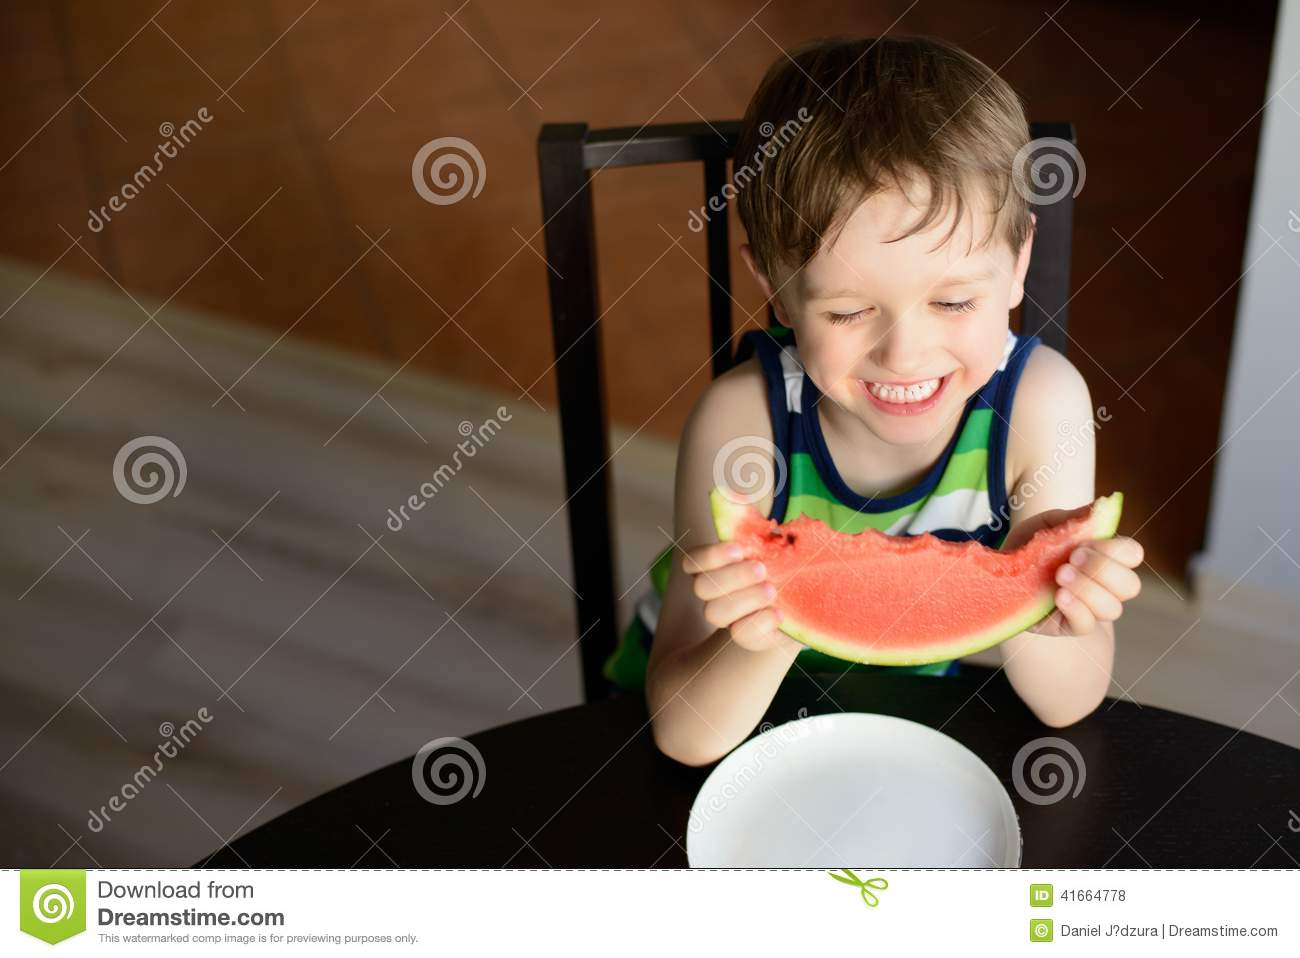 Laughing preschooler eats a watermelon at the table